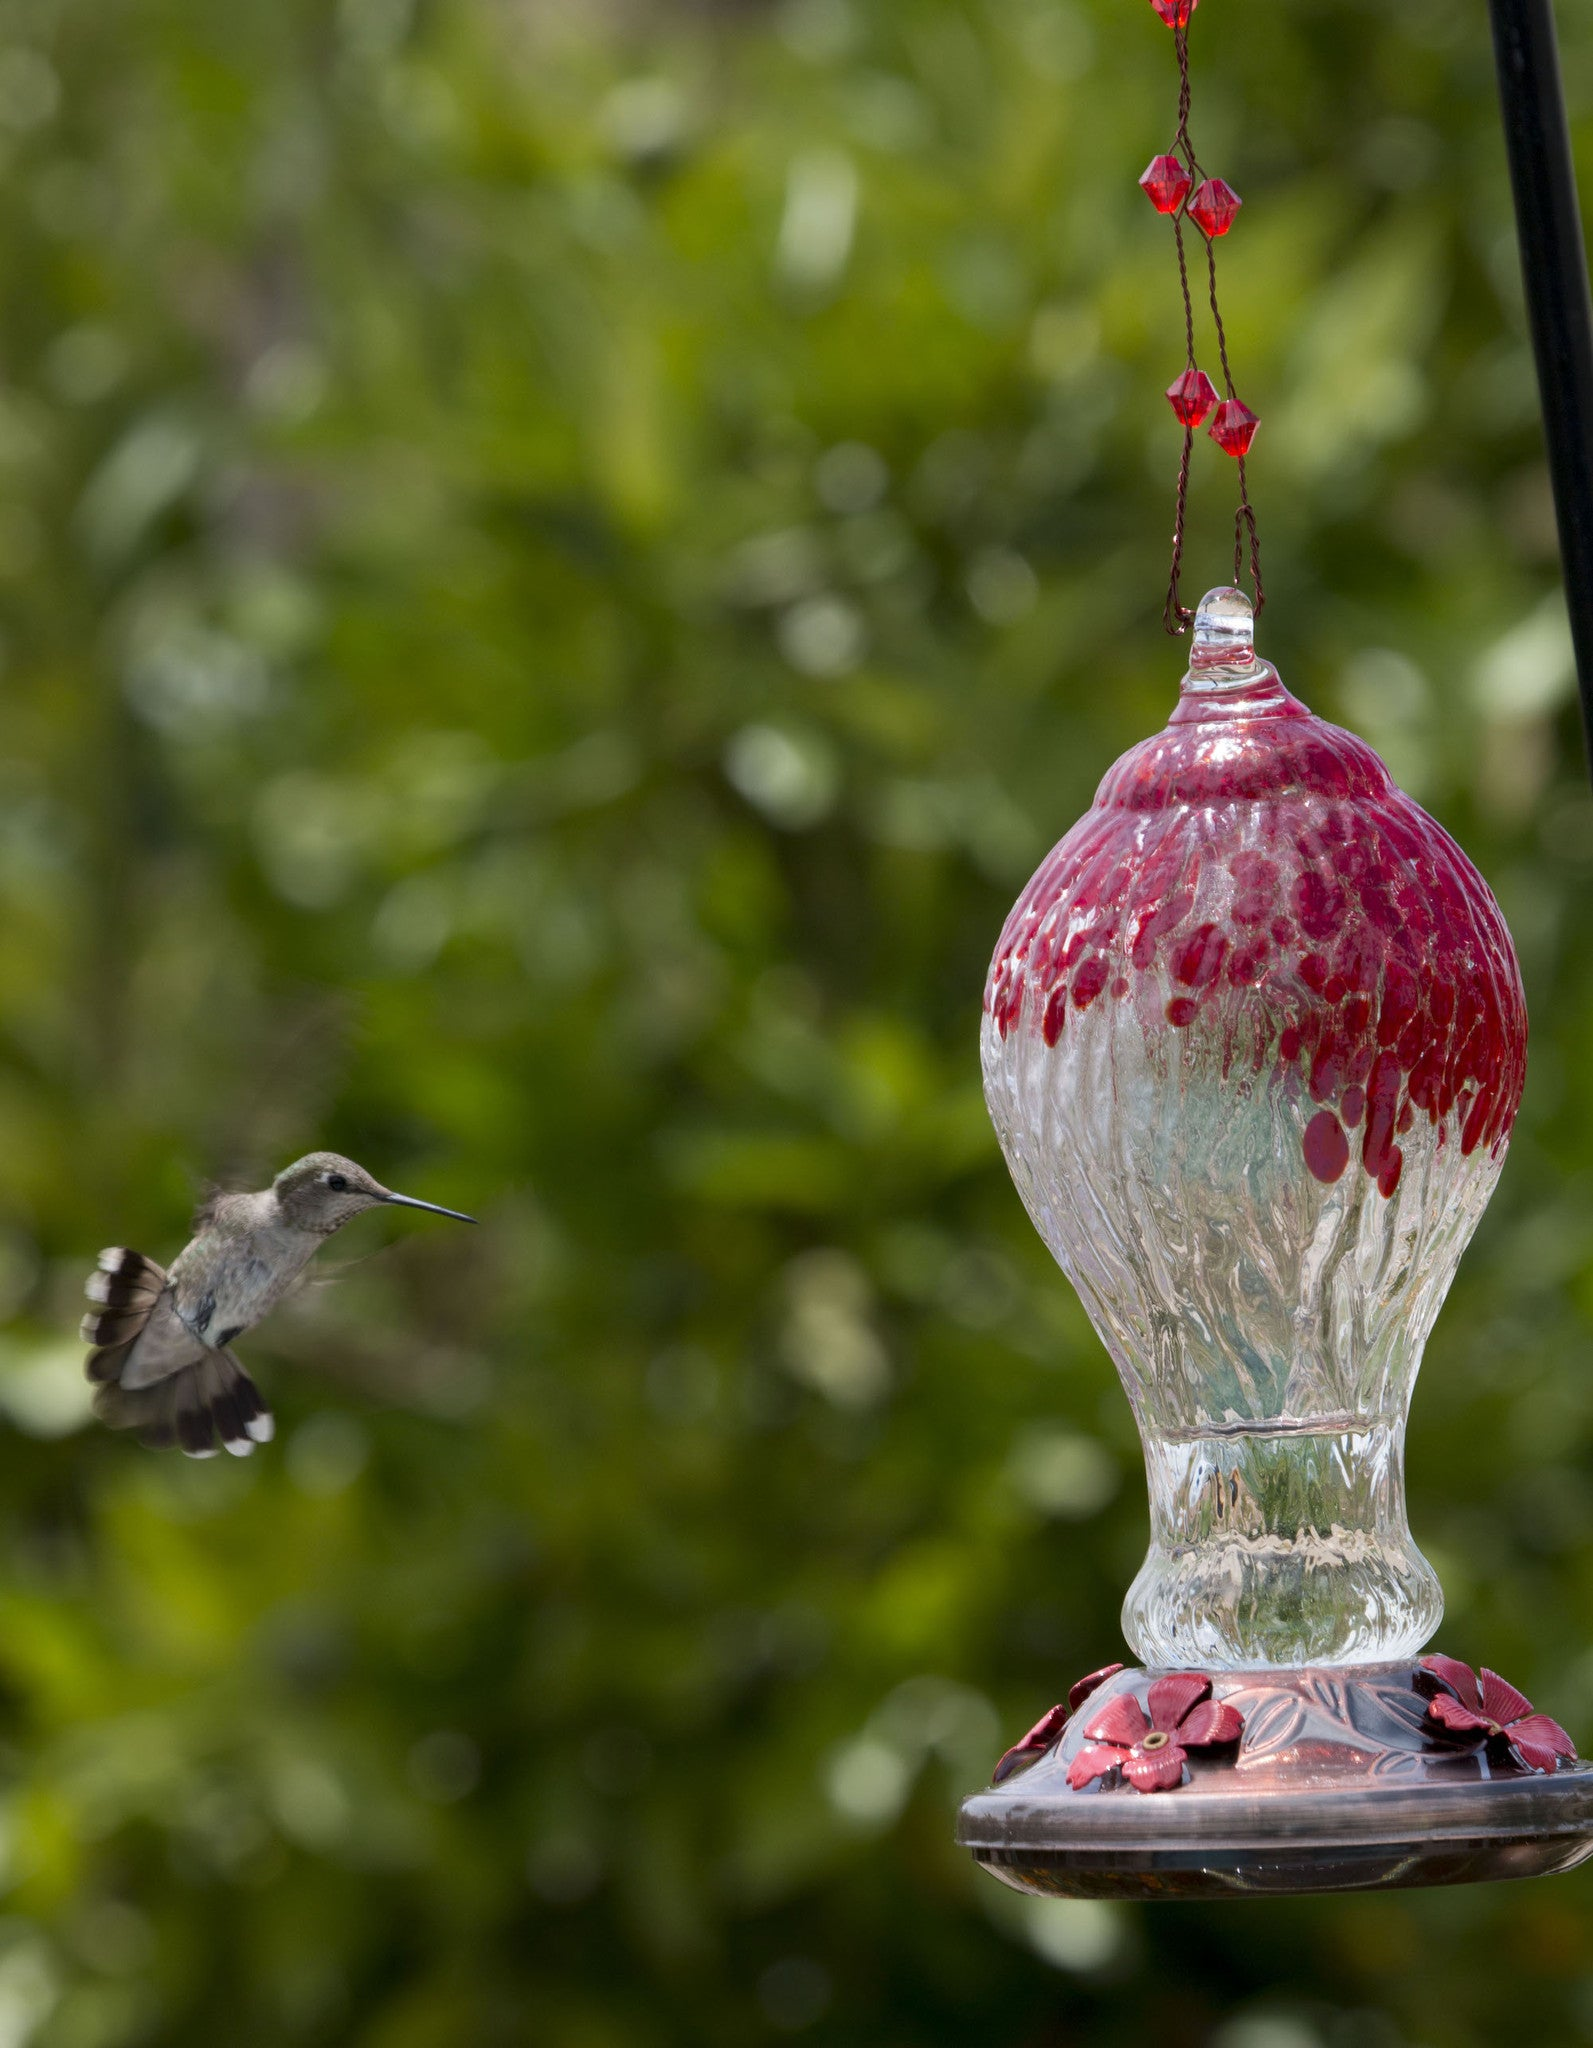 walmart hummingbirds depot for out when home perch high a glass feeders it put image time hummingbird feeder ruby window bird to apple is on sale large